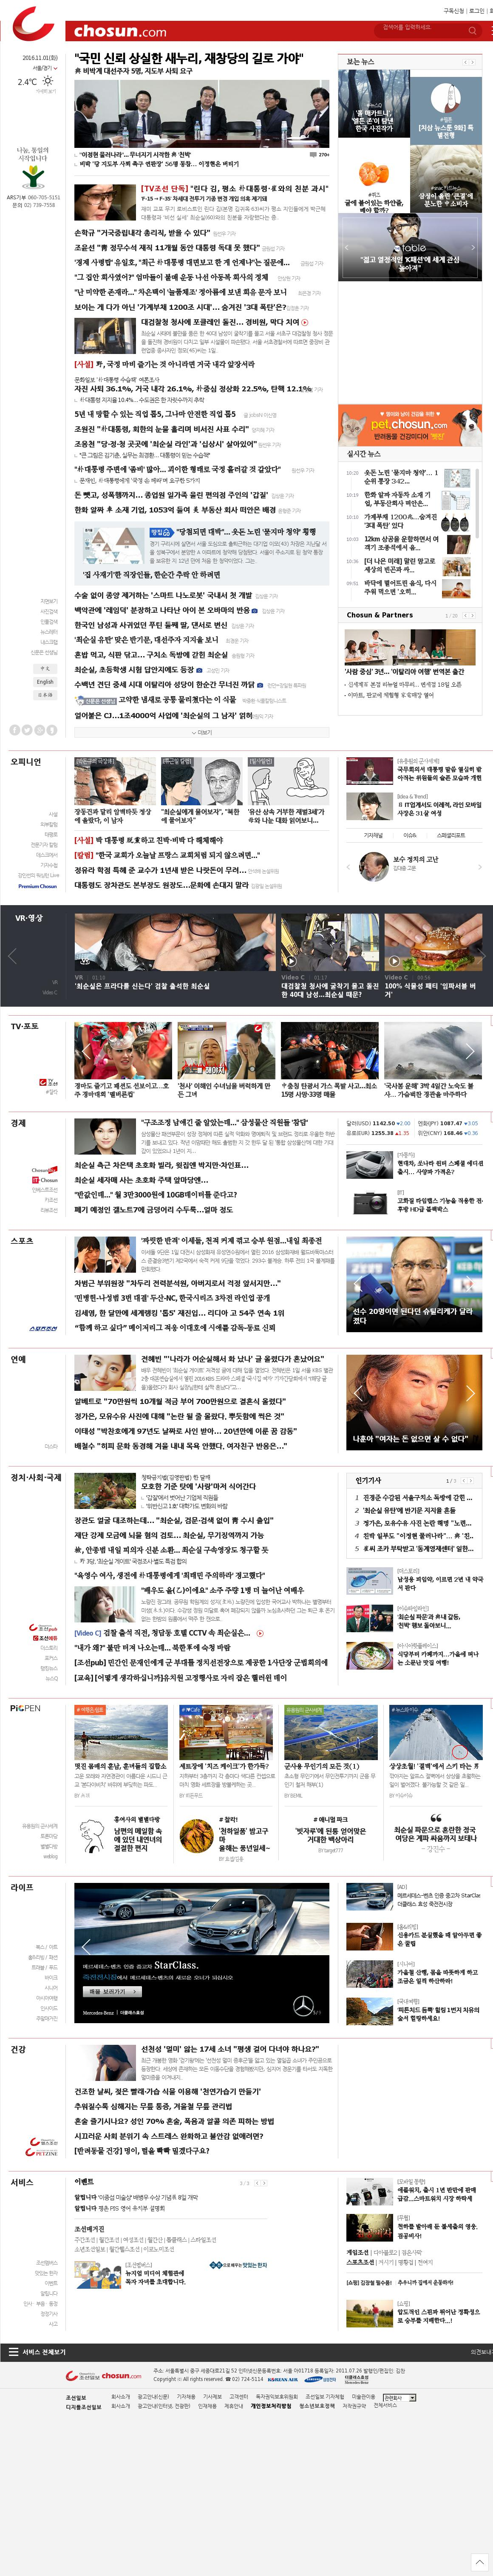 chosun.com at Tuesday Nov. 1, 2016, 12:02 p.m. UTC